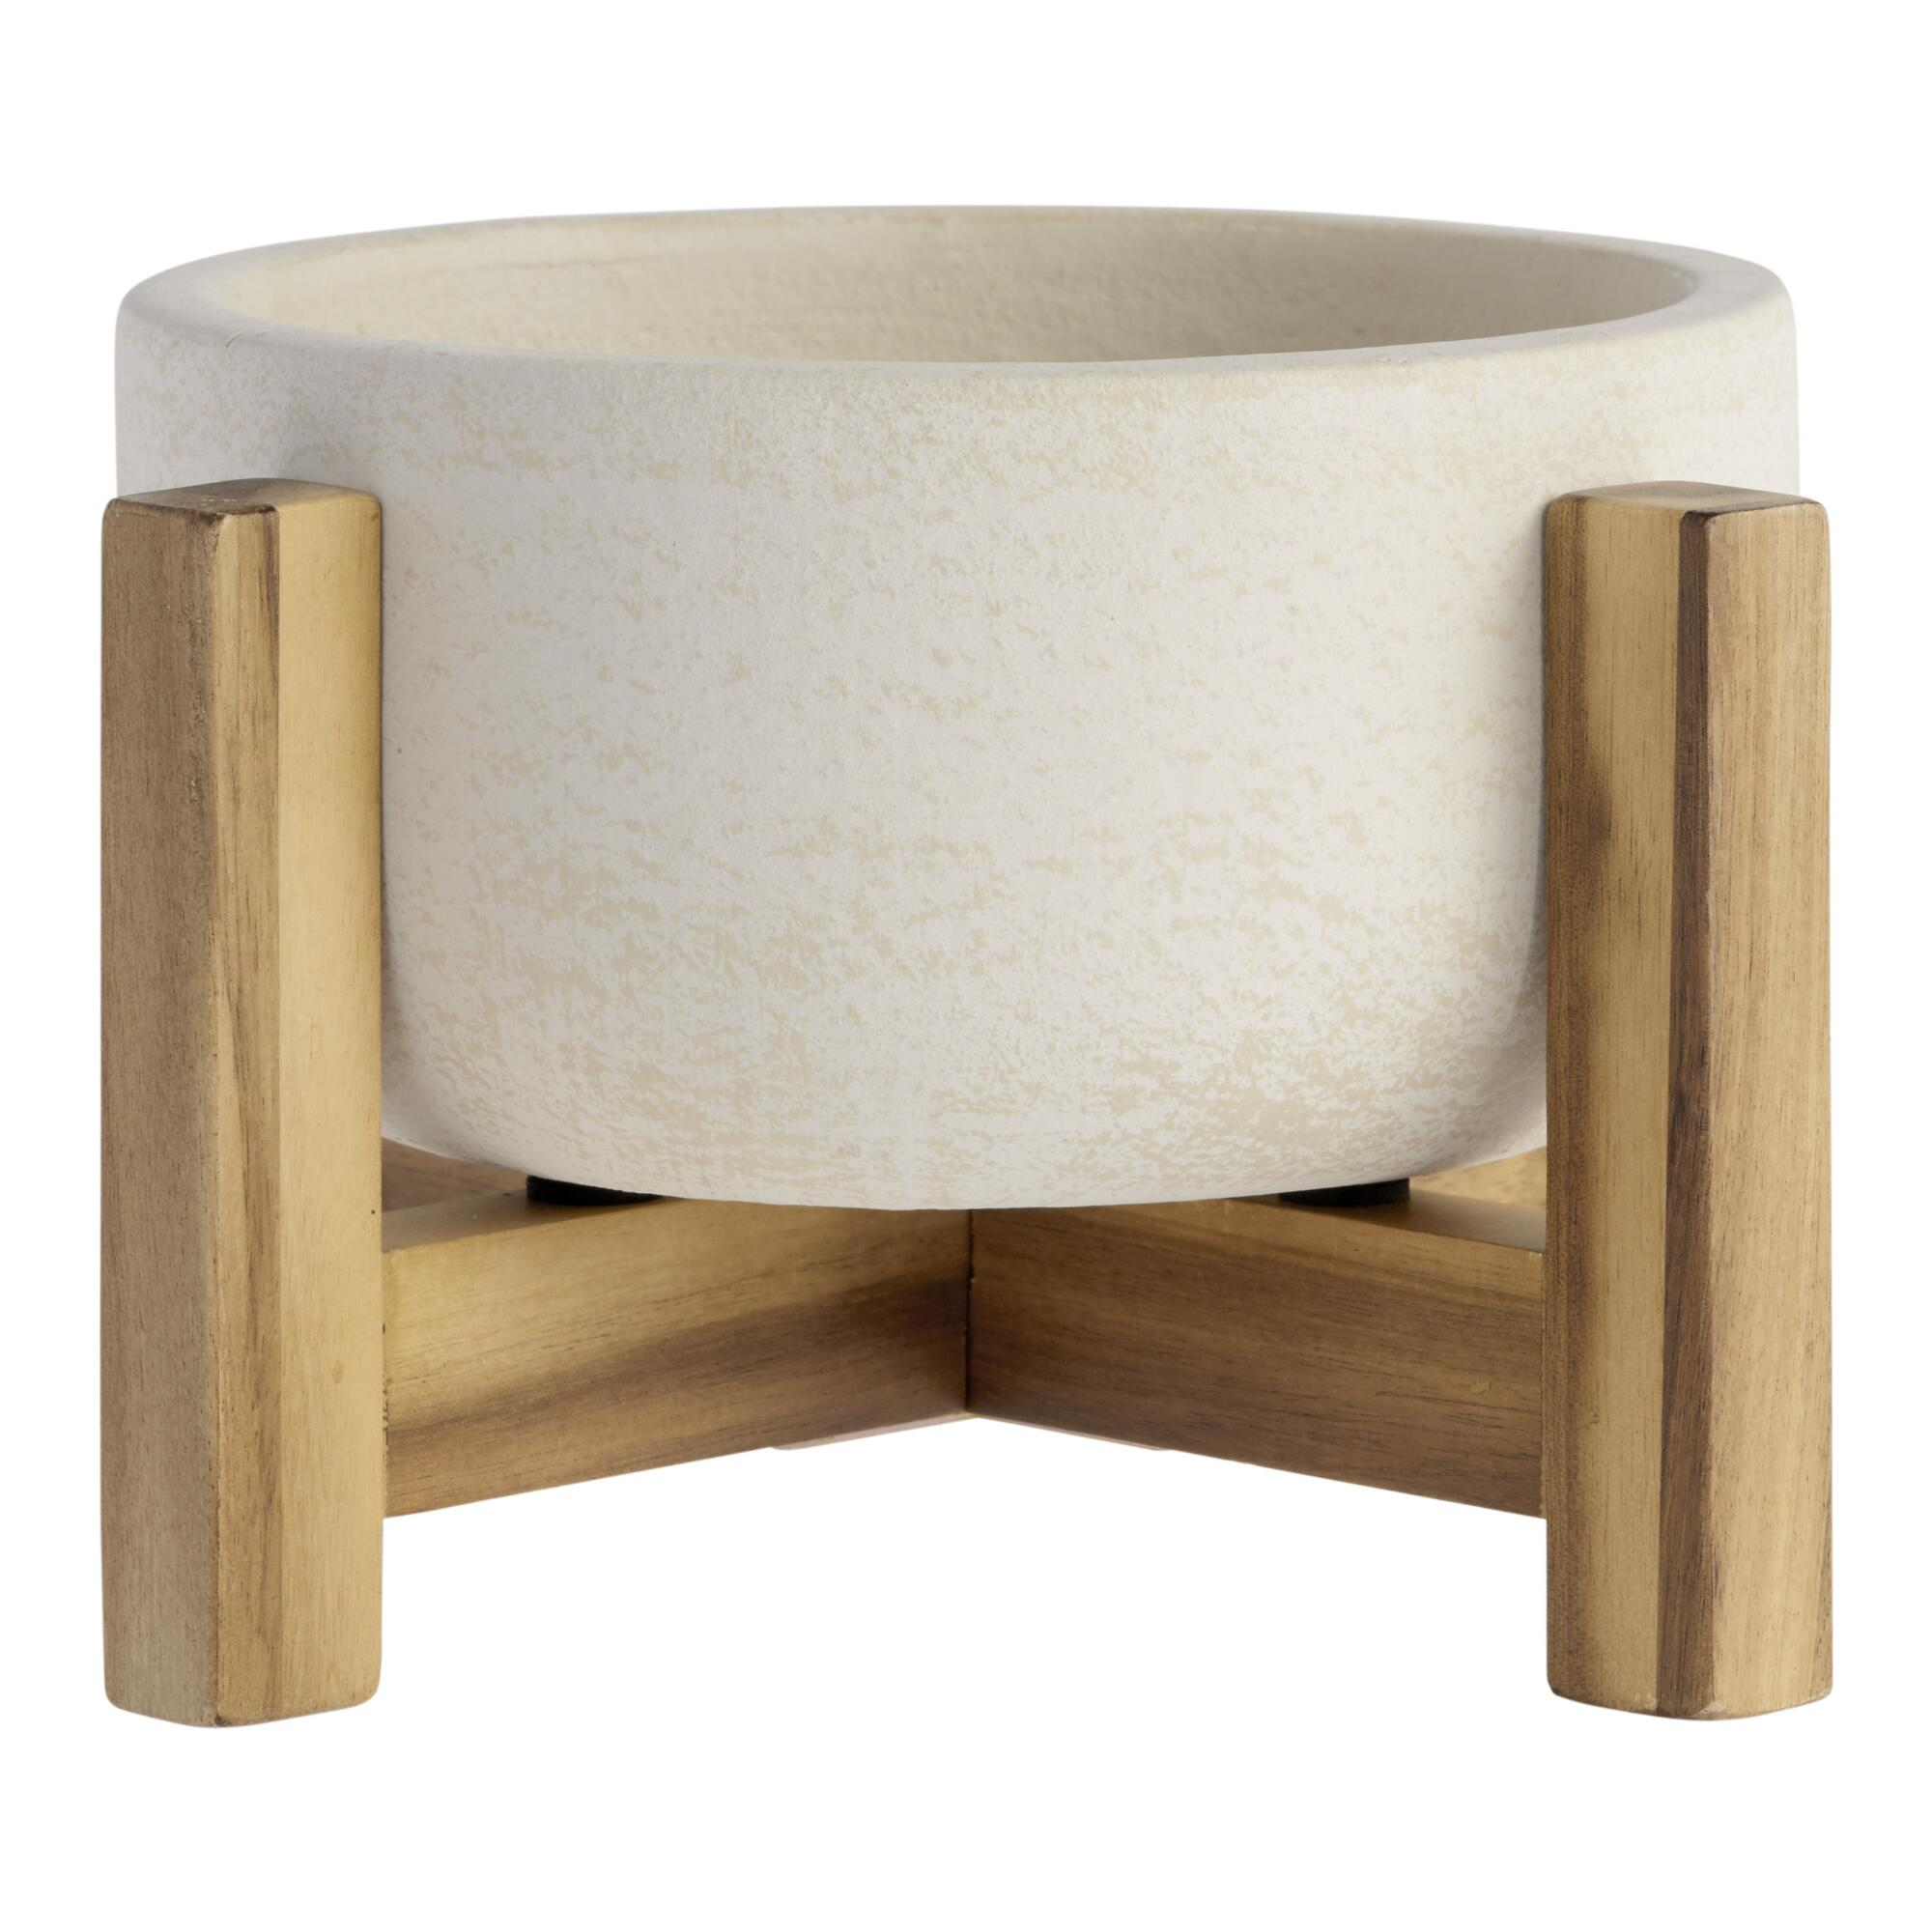 Wide White Ceramic Planter With Wood Stand by World Market